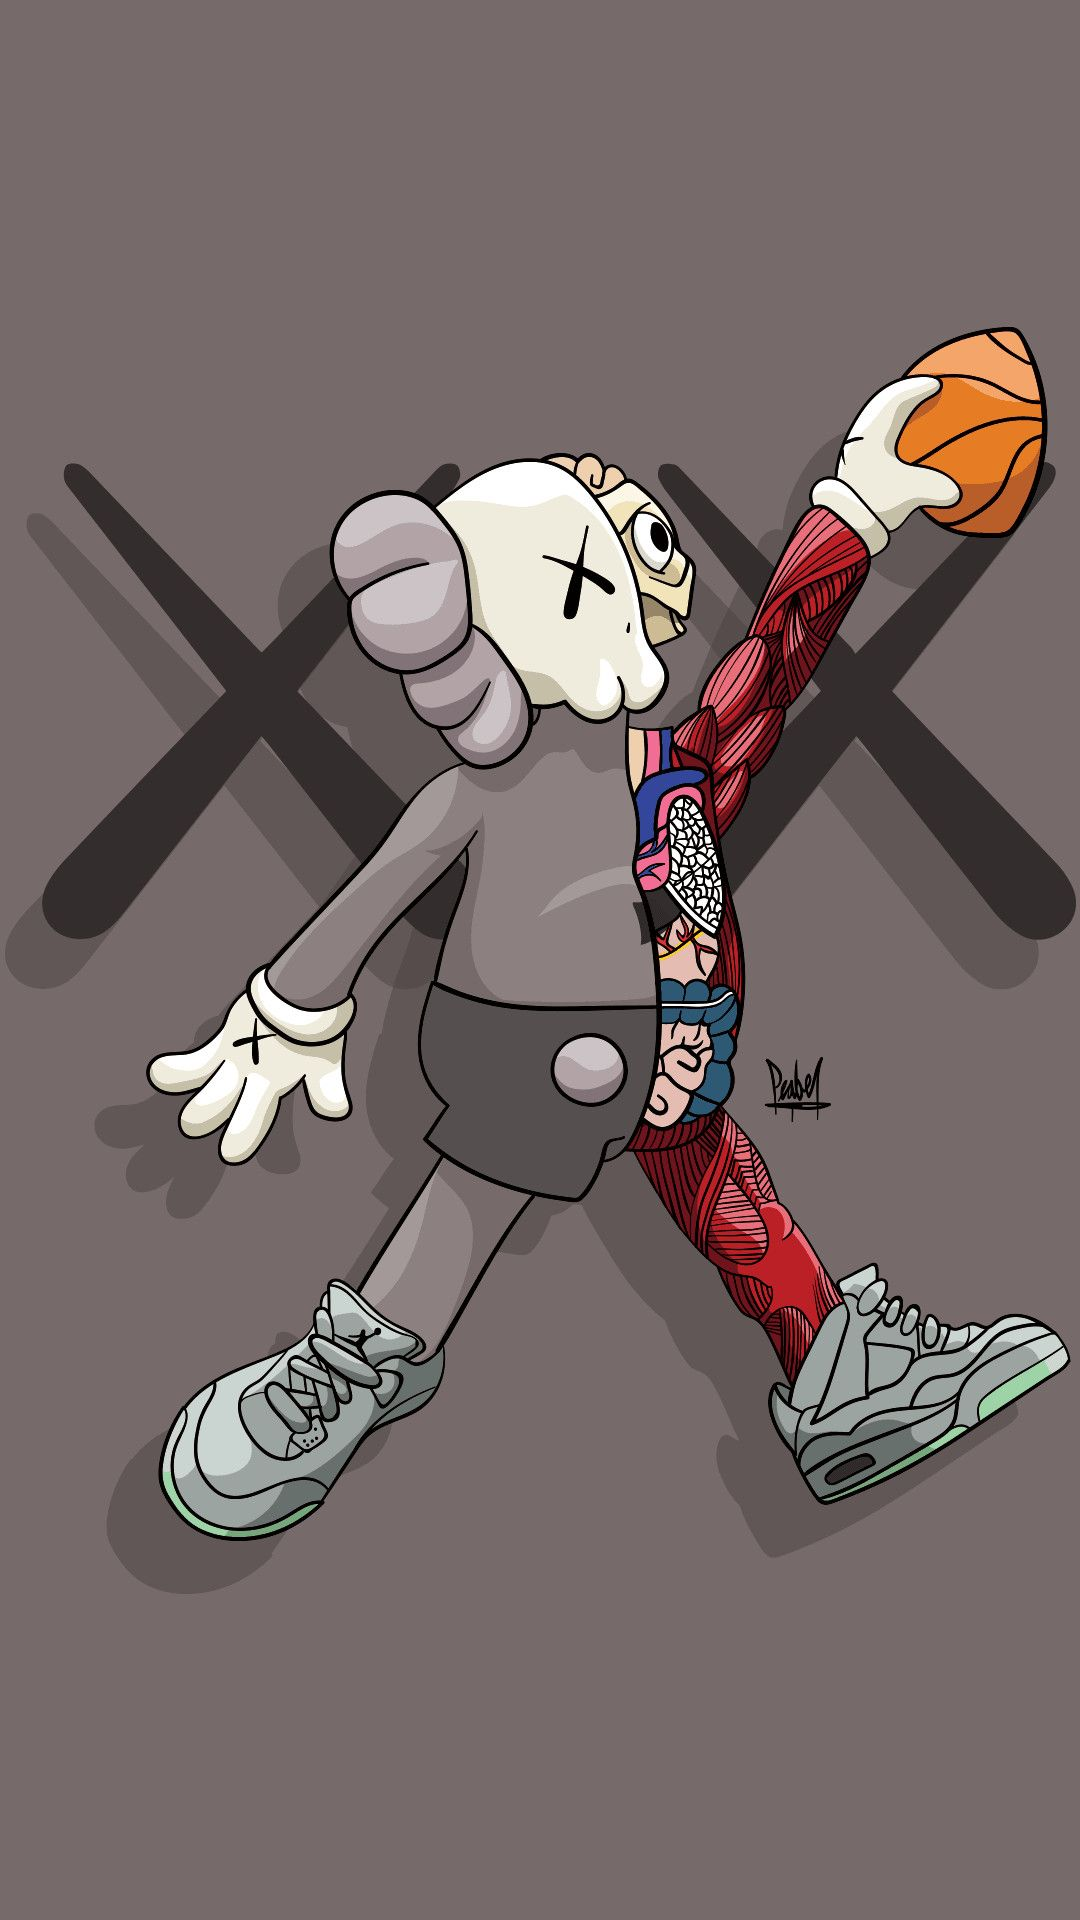 77 Kaws Hd Wallpapers On Wallpaperplay Papel De Empapelar Nike